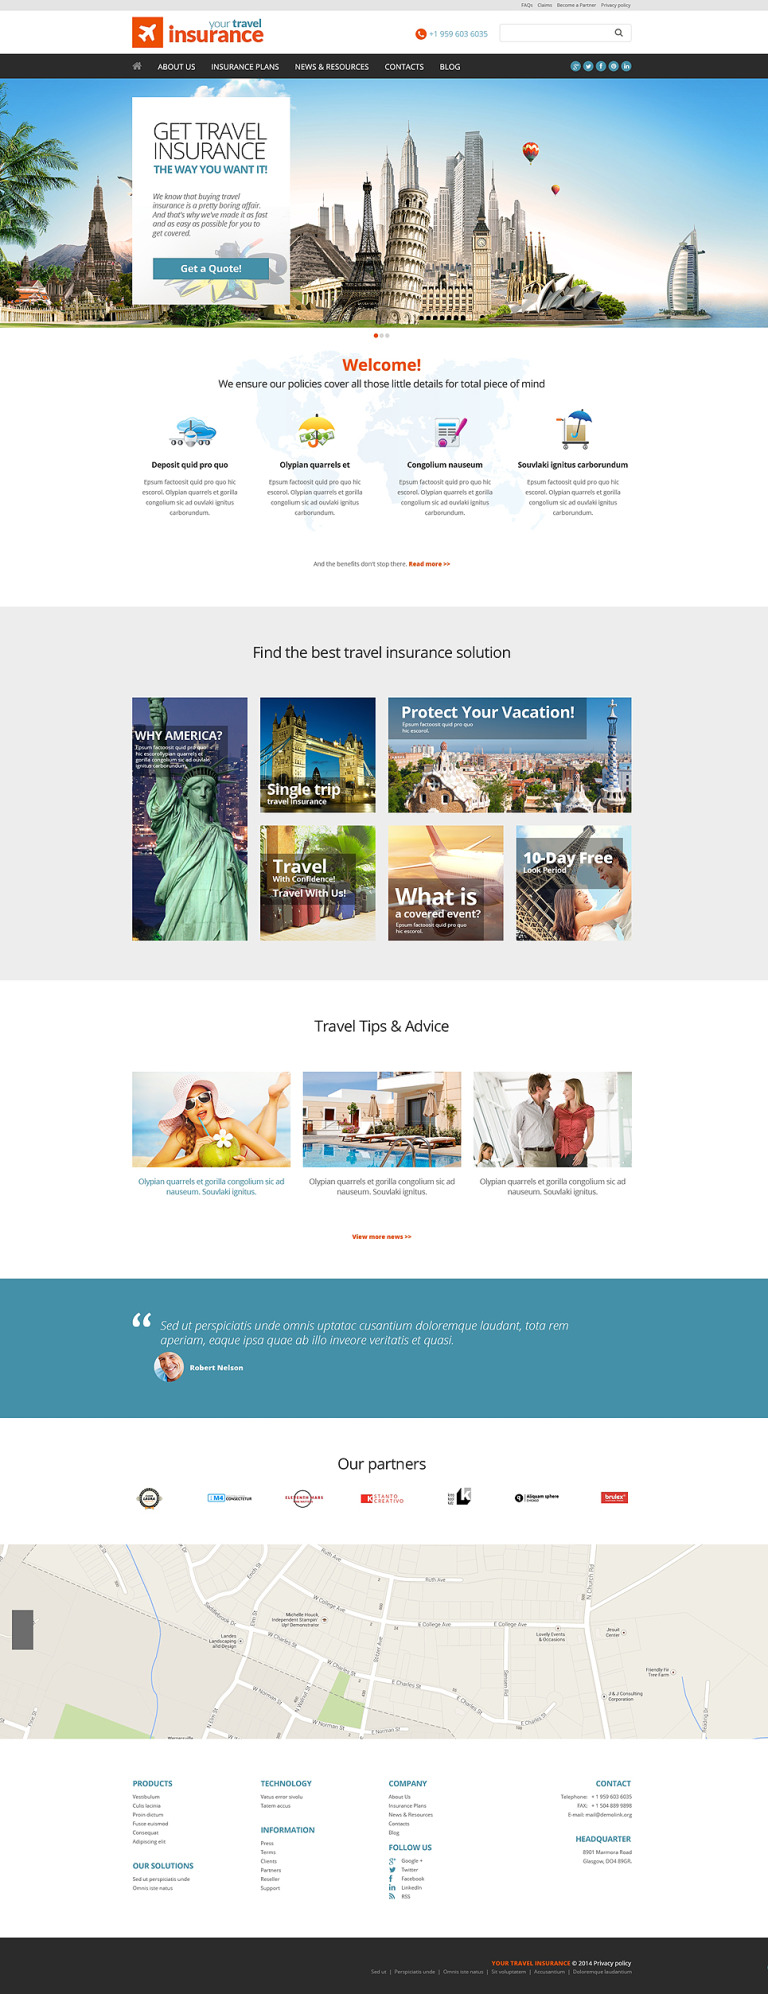 travel insurance website template  Travel Insurance Company WordPress Theme #51127